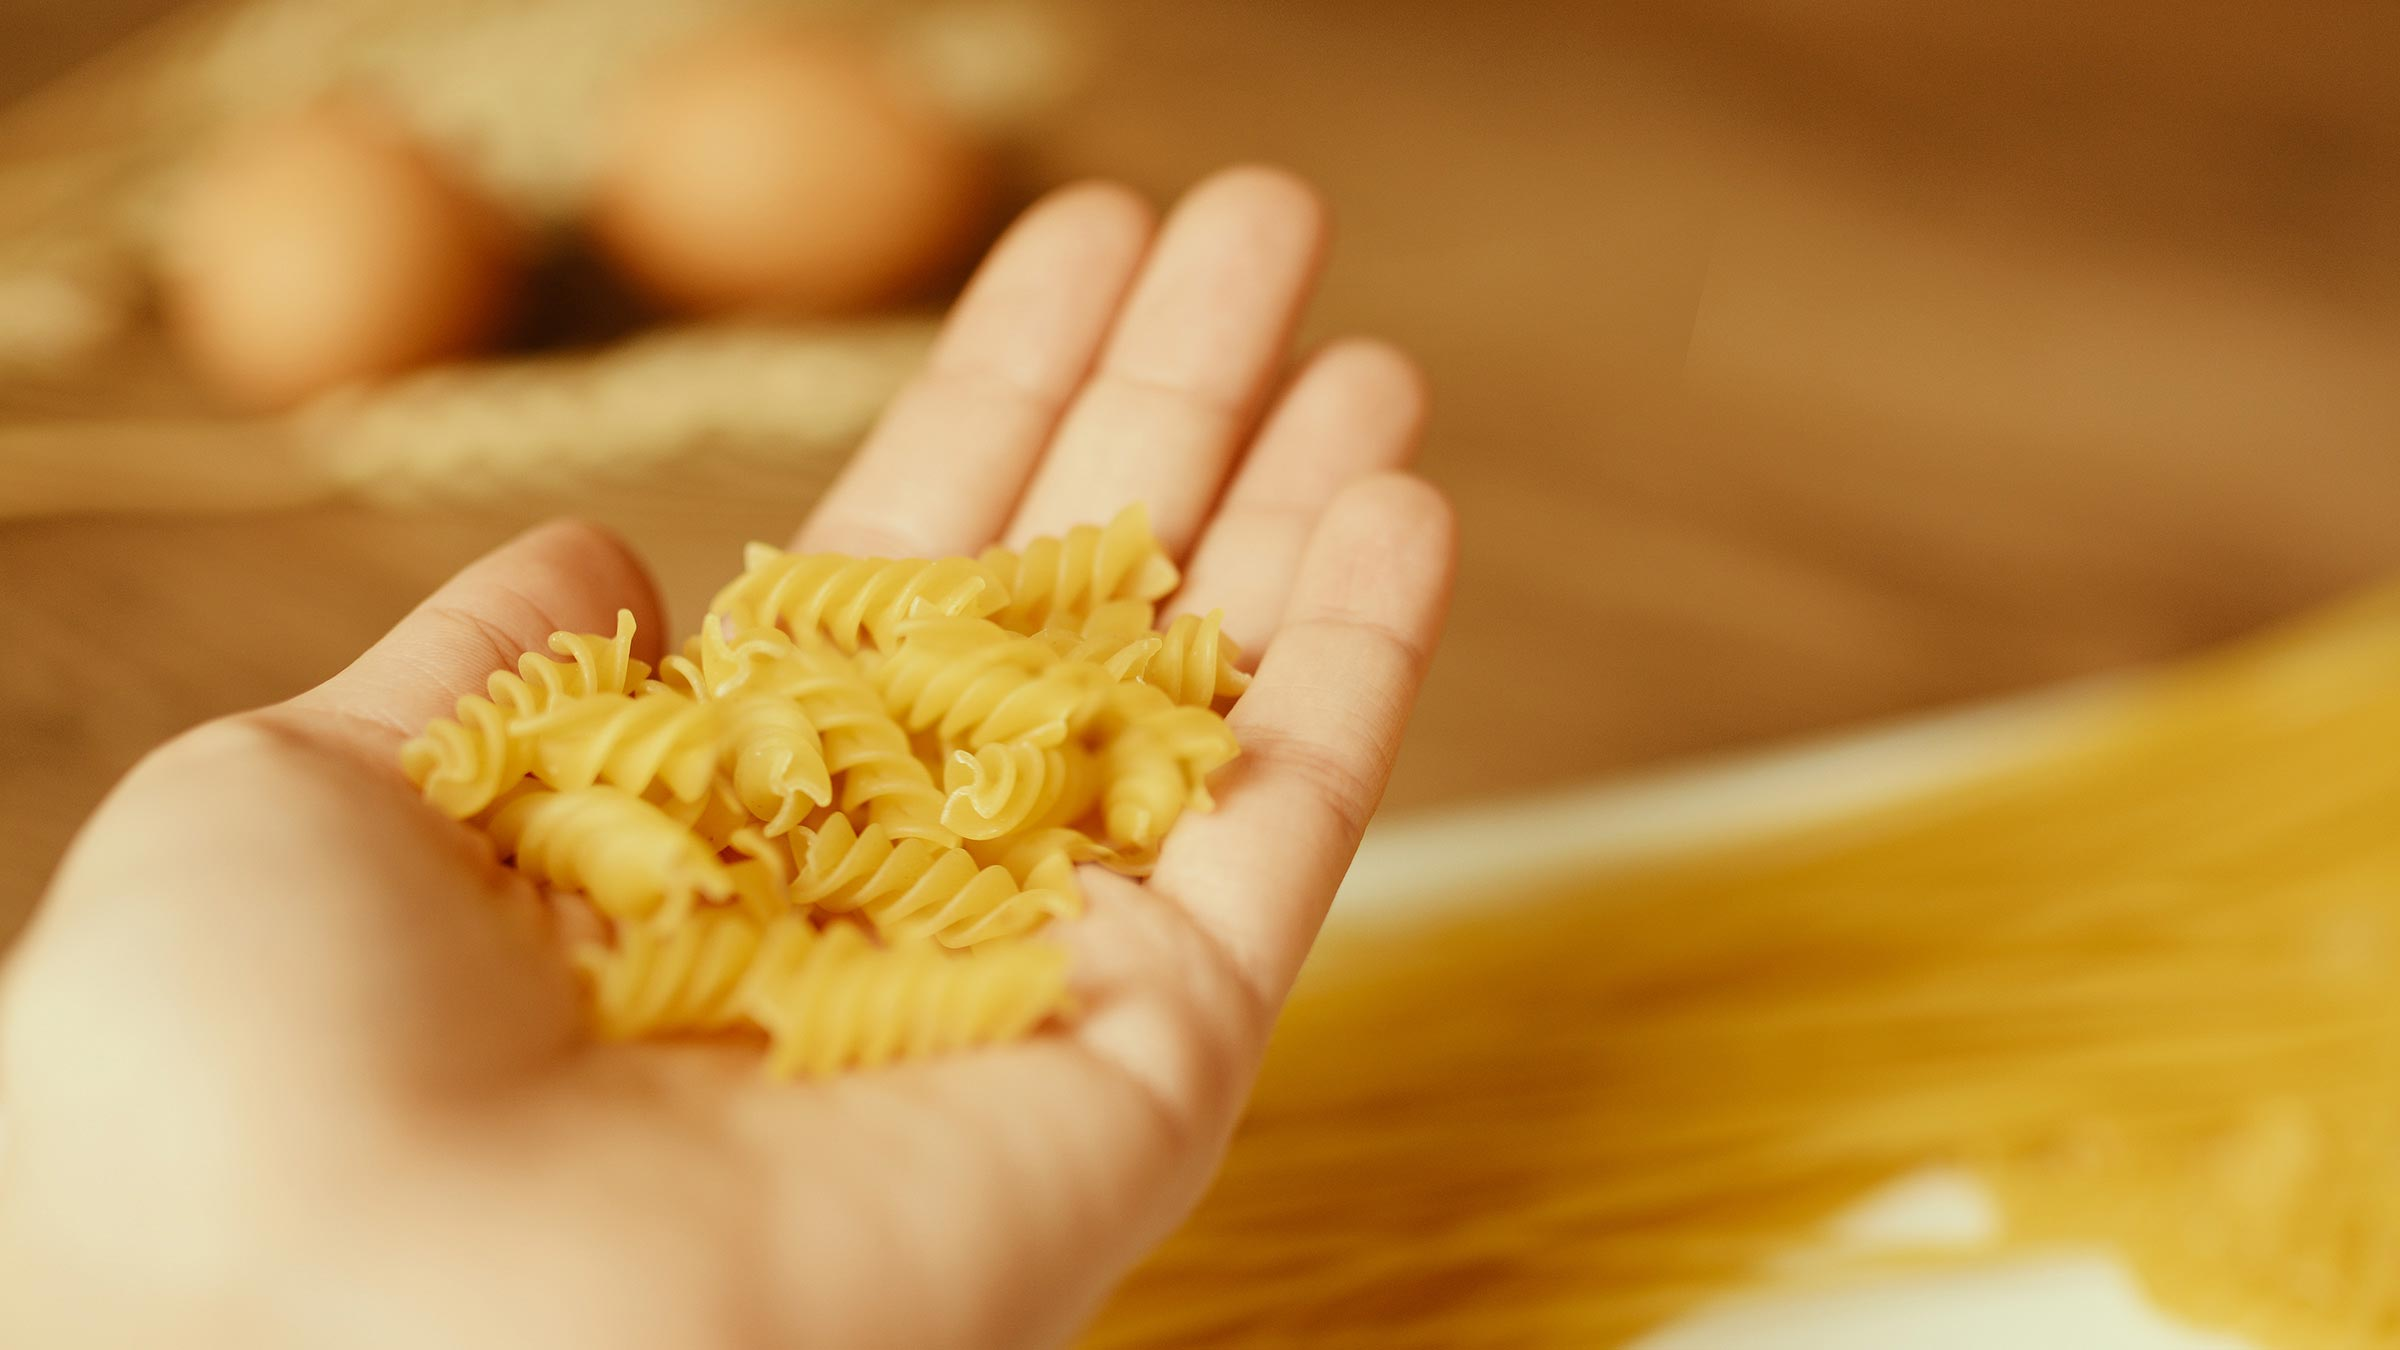 Making the best pasta out of your raw materials